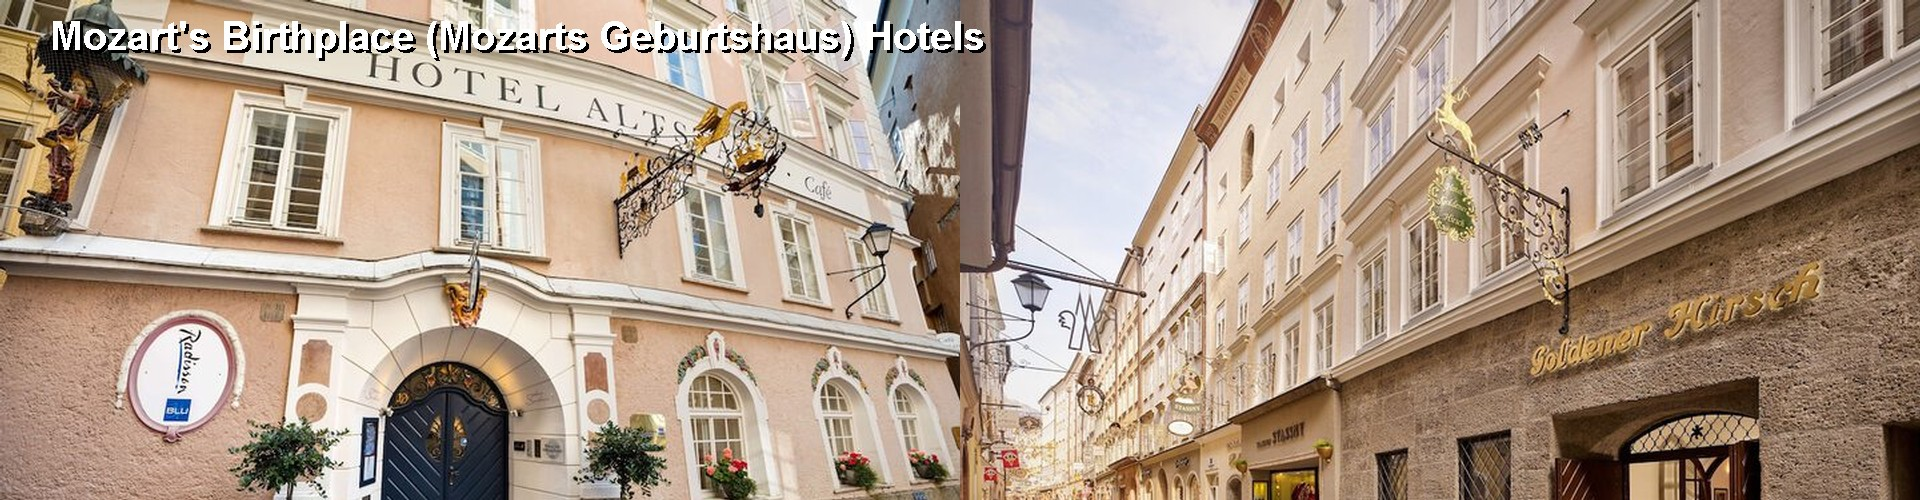 5 Best Hotels near Mozart's Birthplace (Mozarts Geburtshaus)